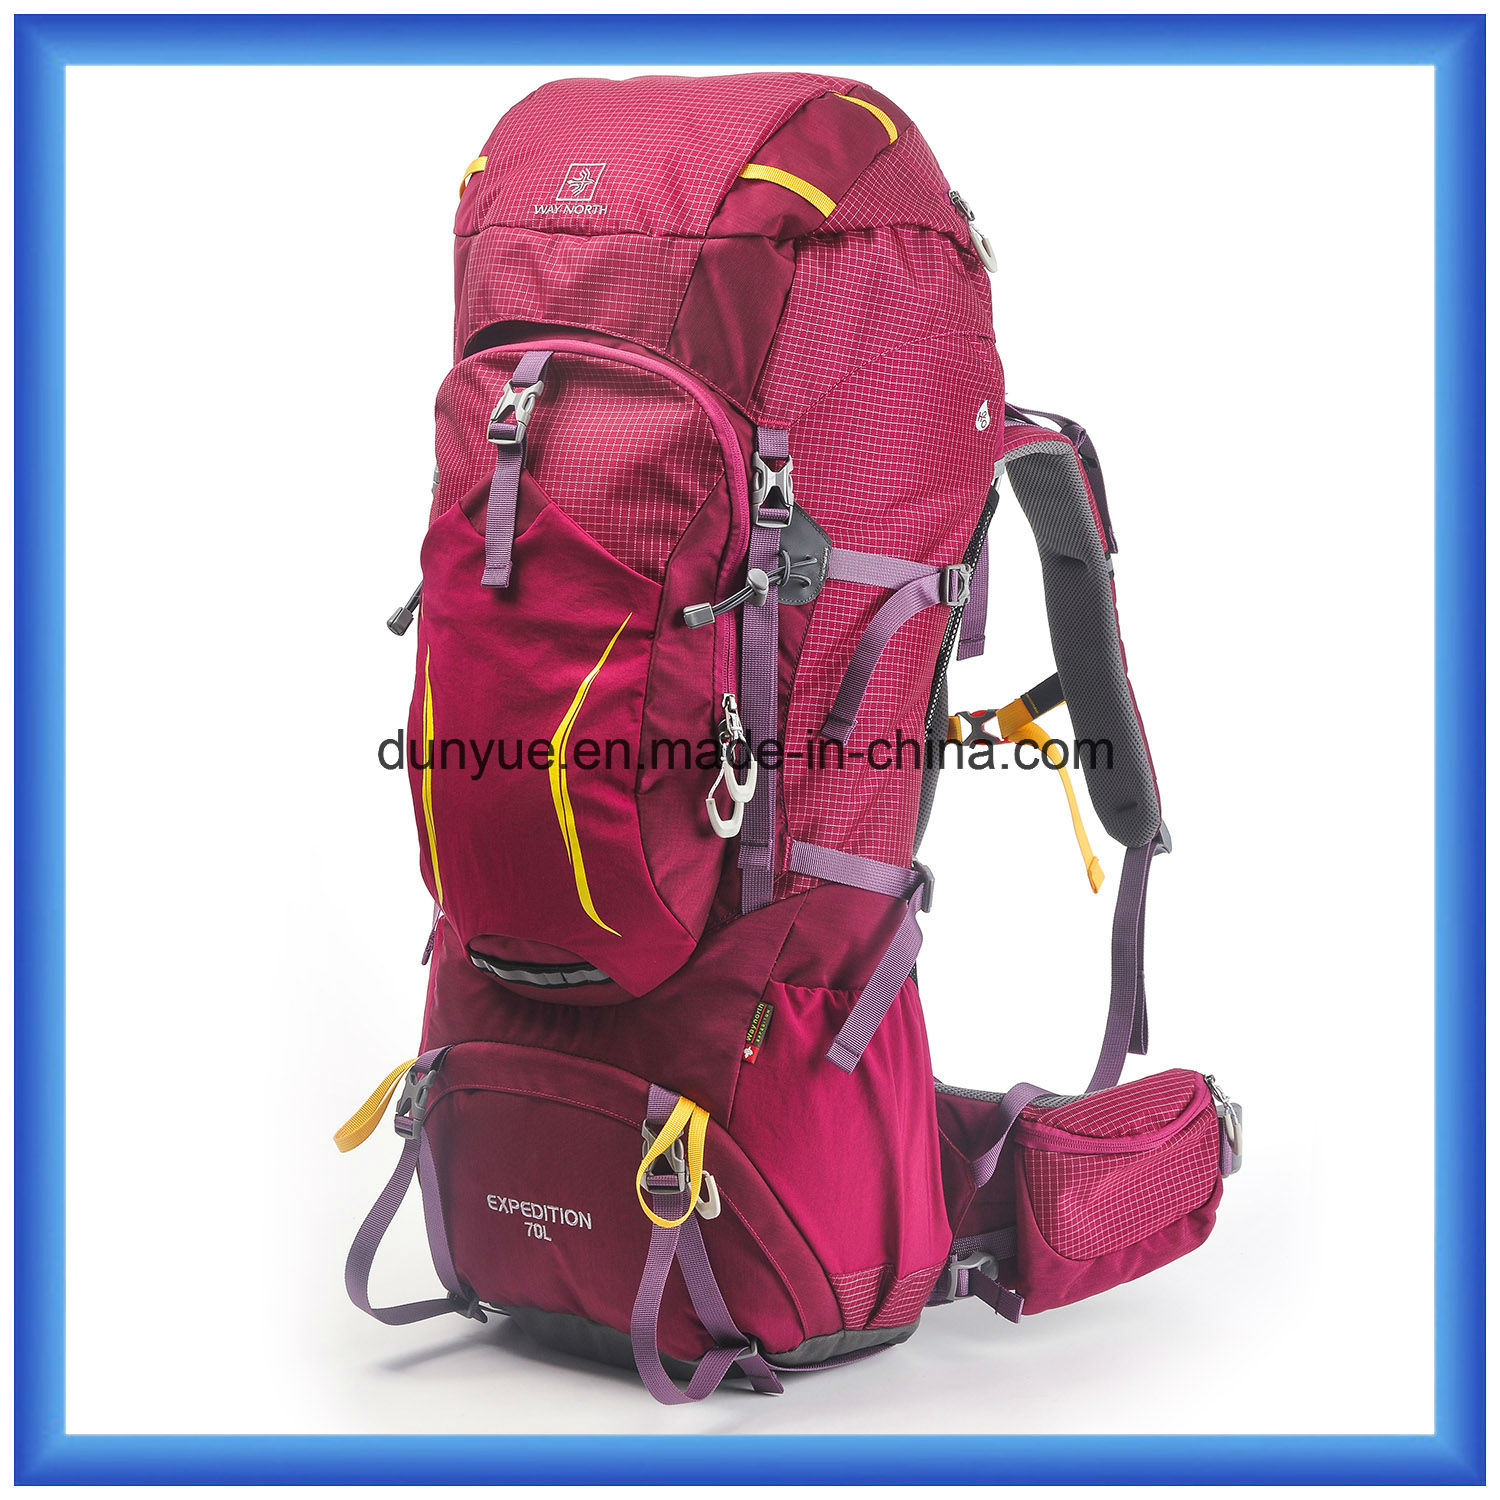 Hot Sale 70L Large Capacity Mountaineering Backpack, Outdoor Hiking Backpack, Multi-Functional Custom Climbing Camping Backpack